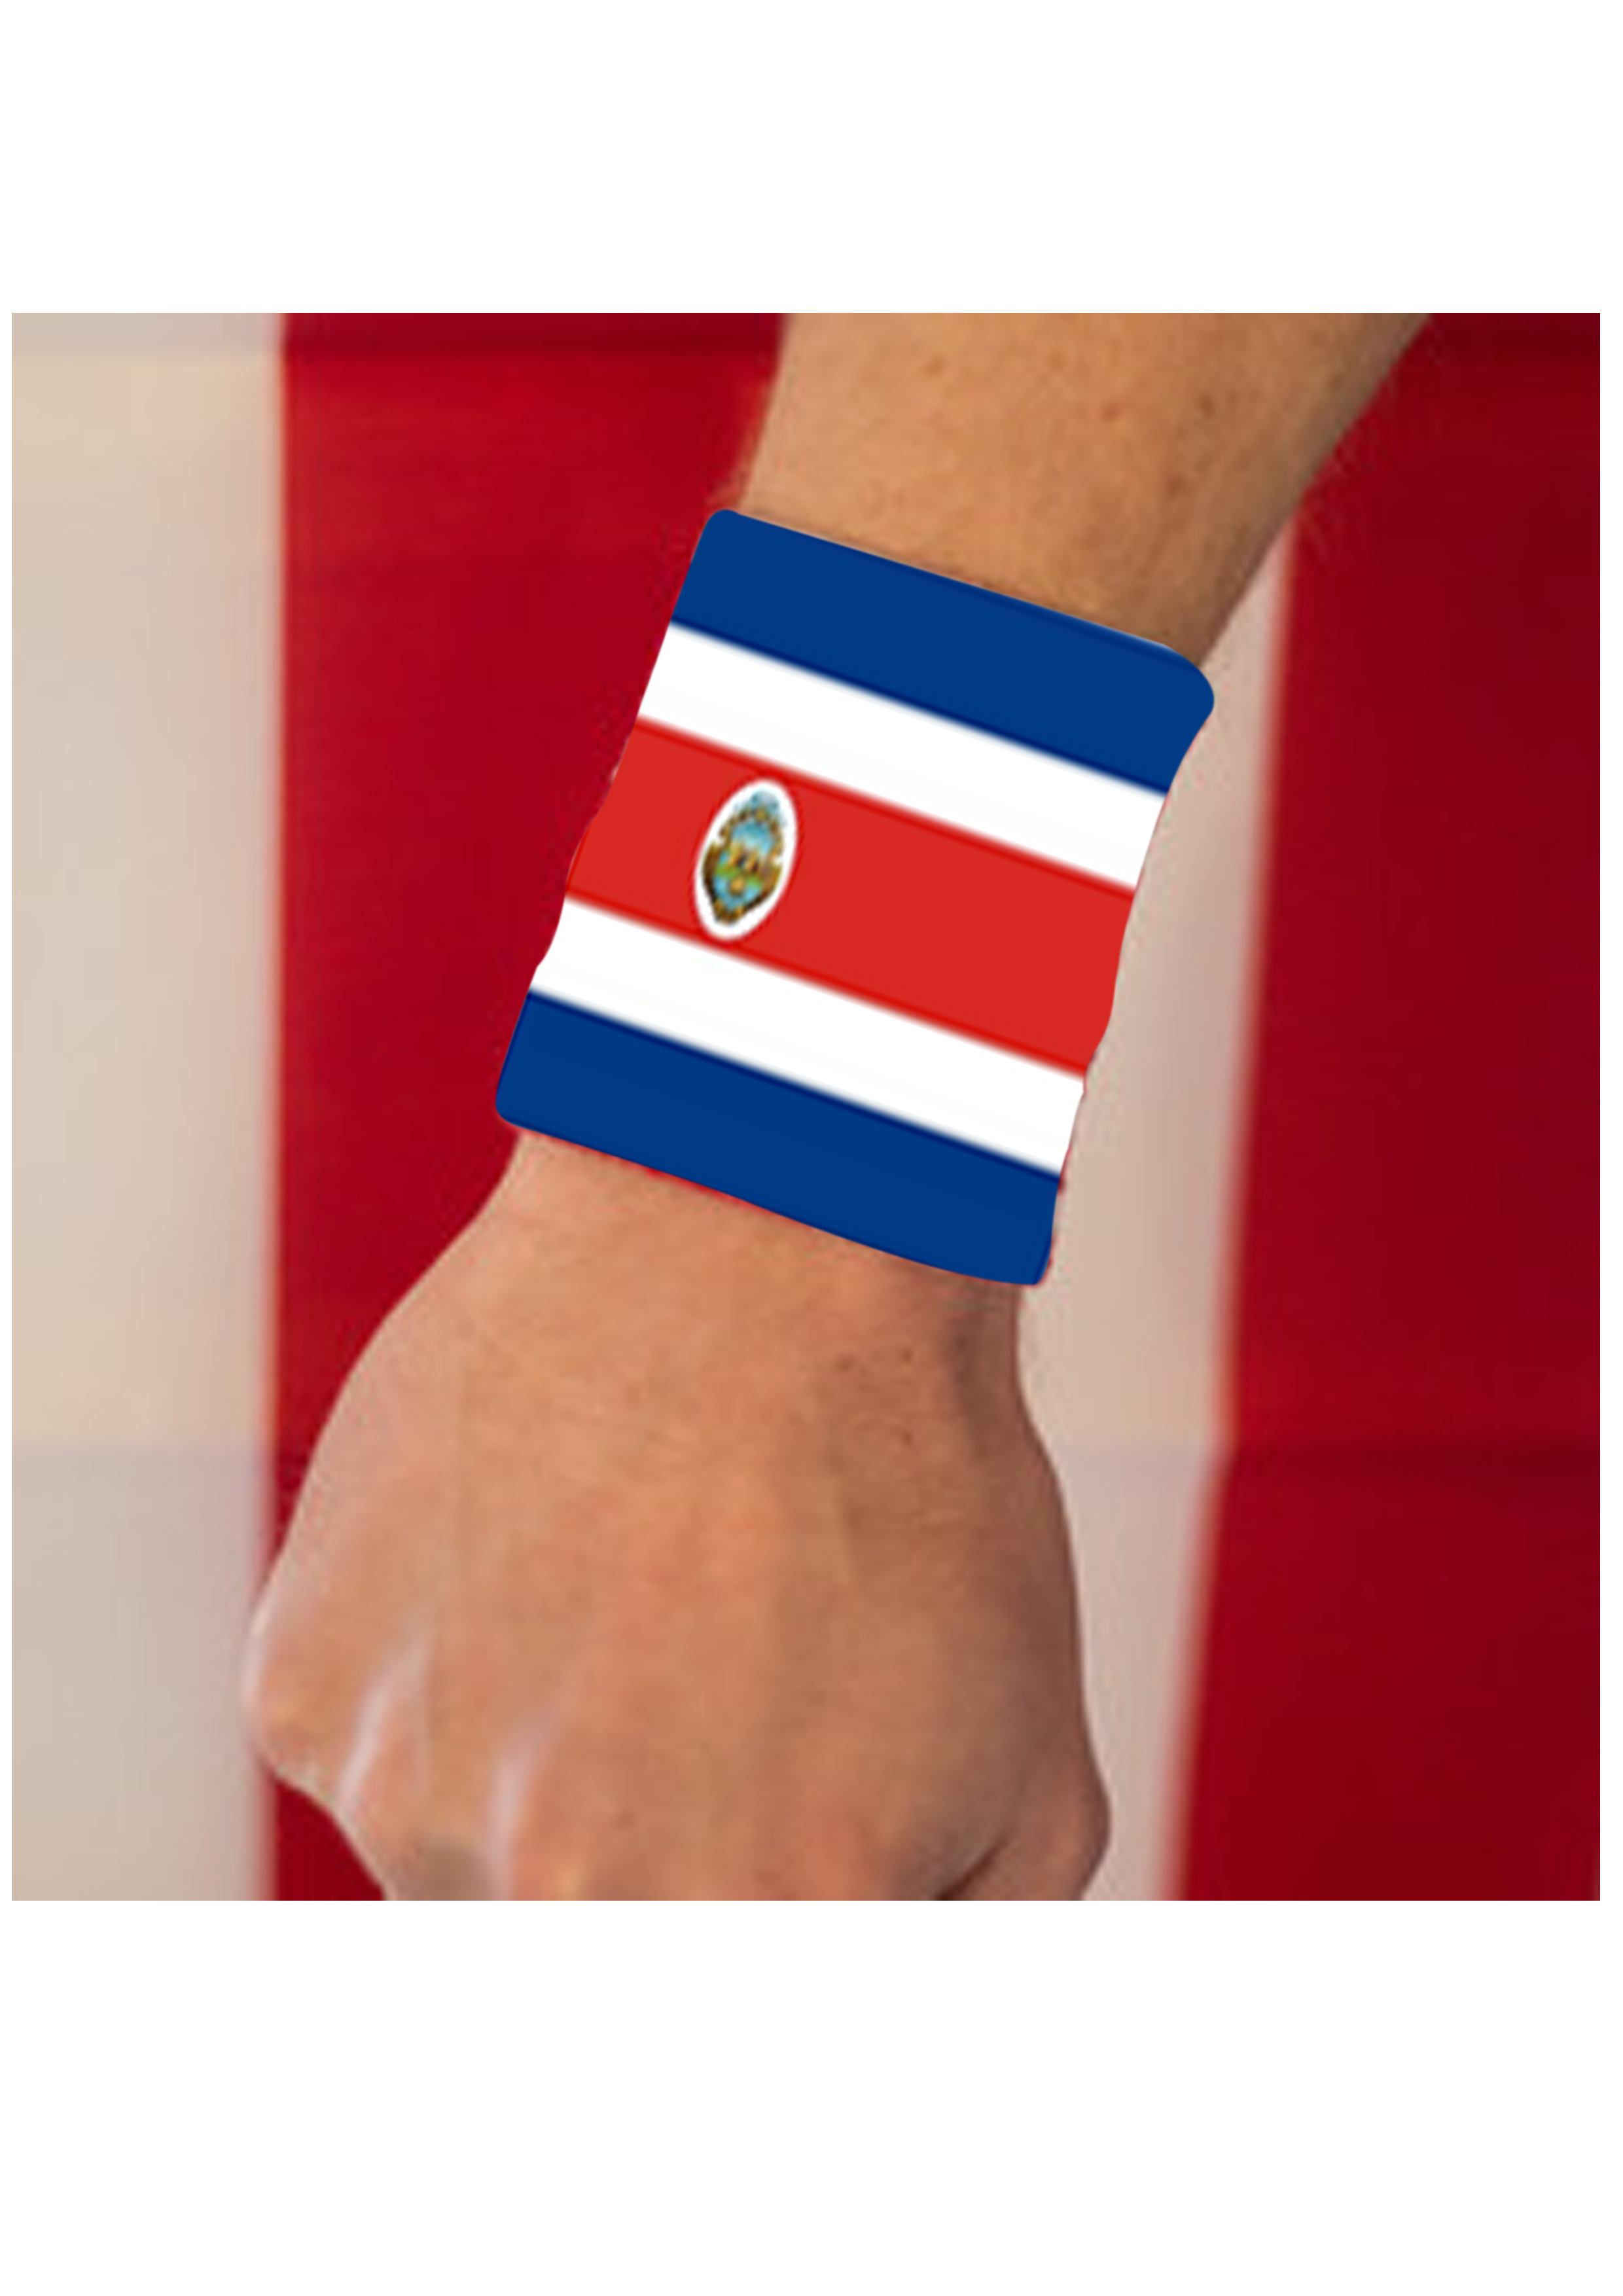 images/Costa Rica image hand band.jpg